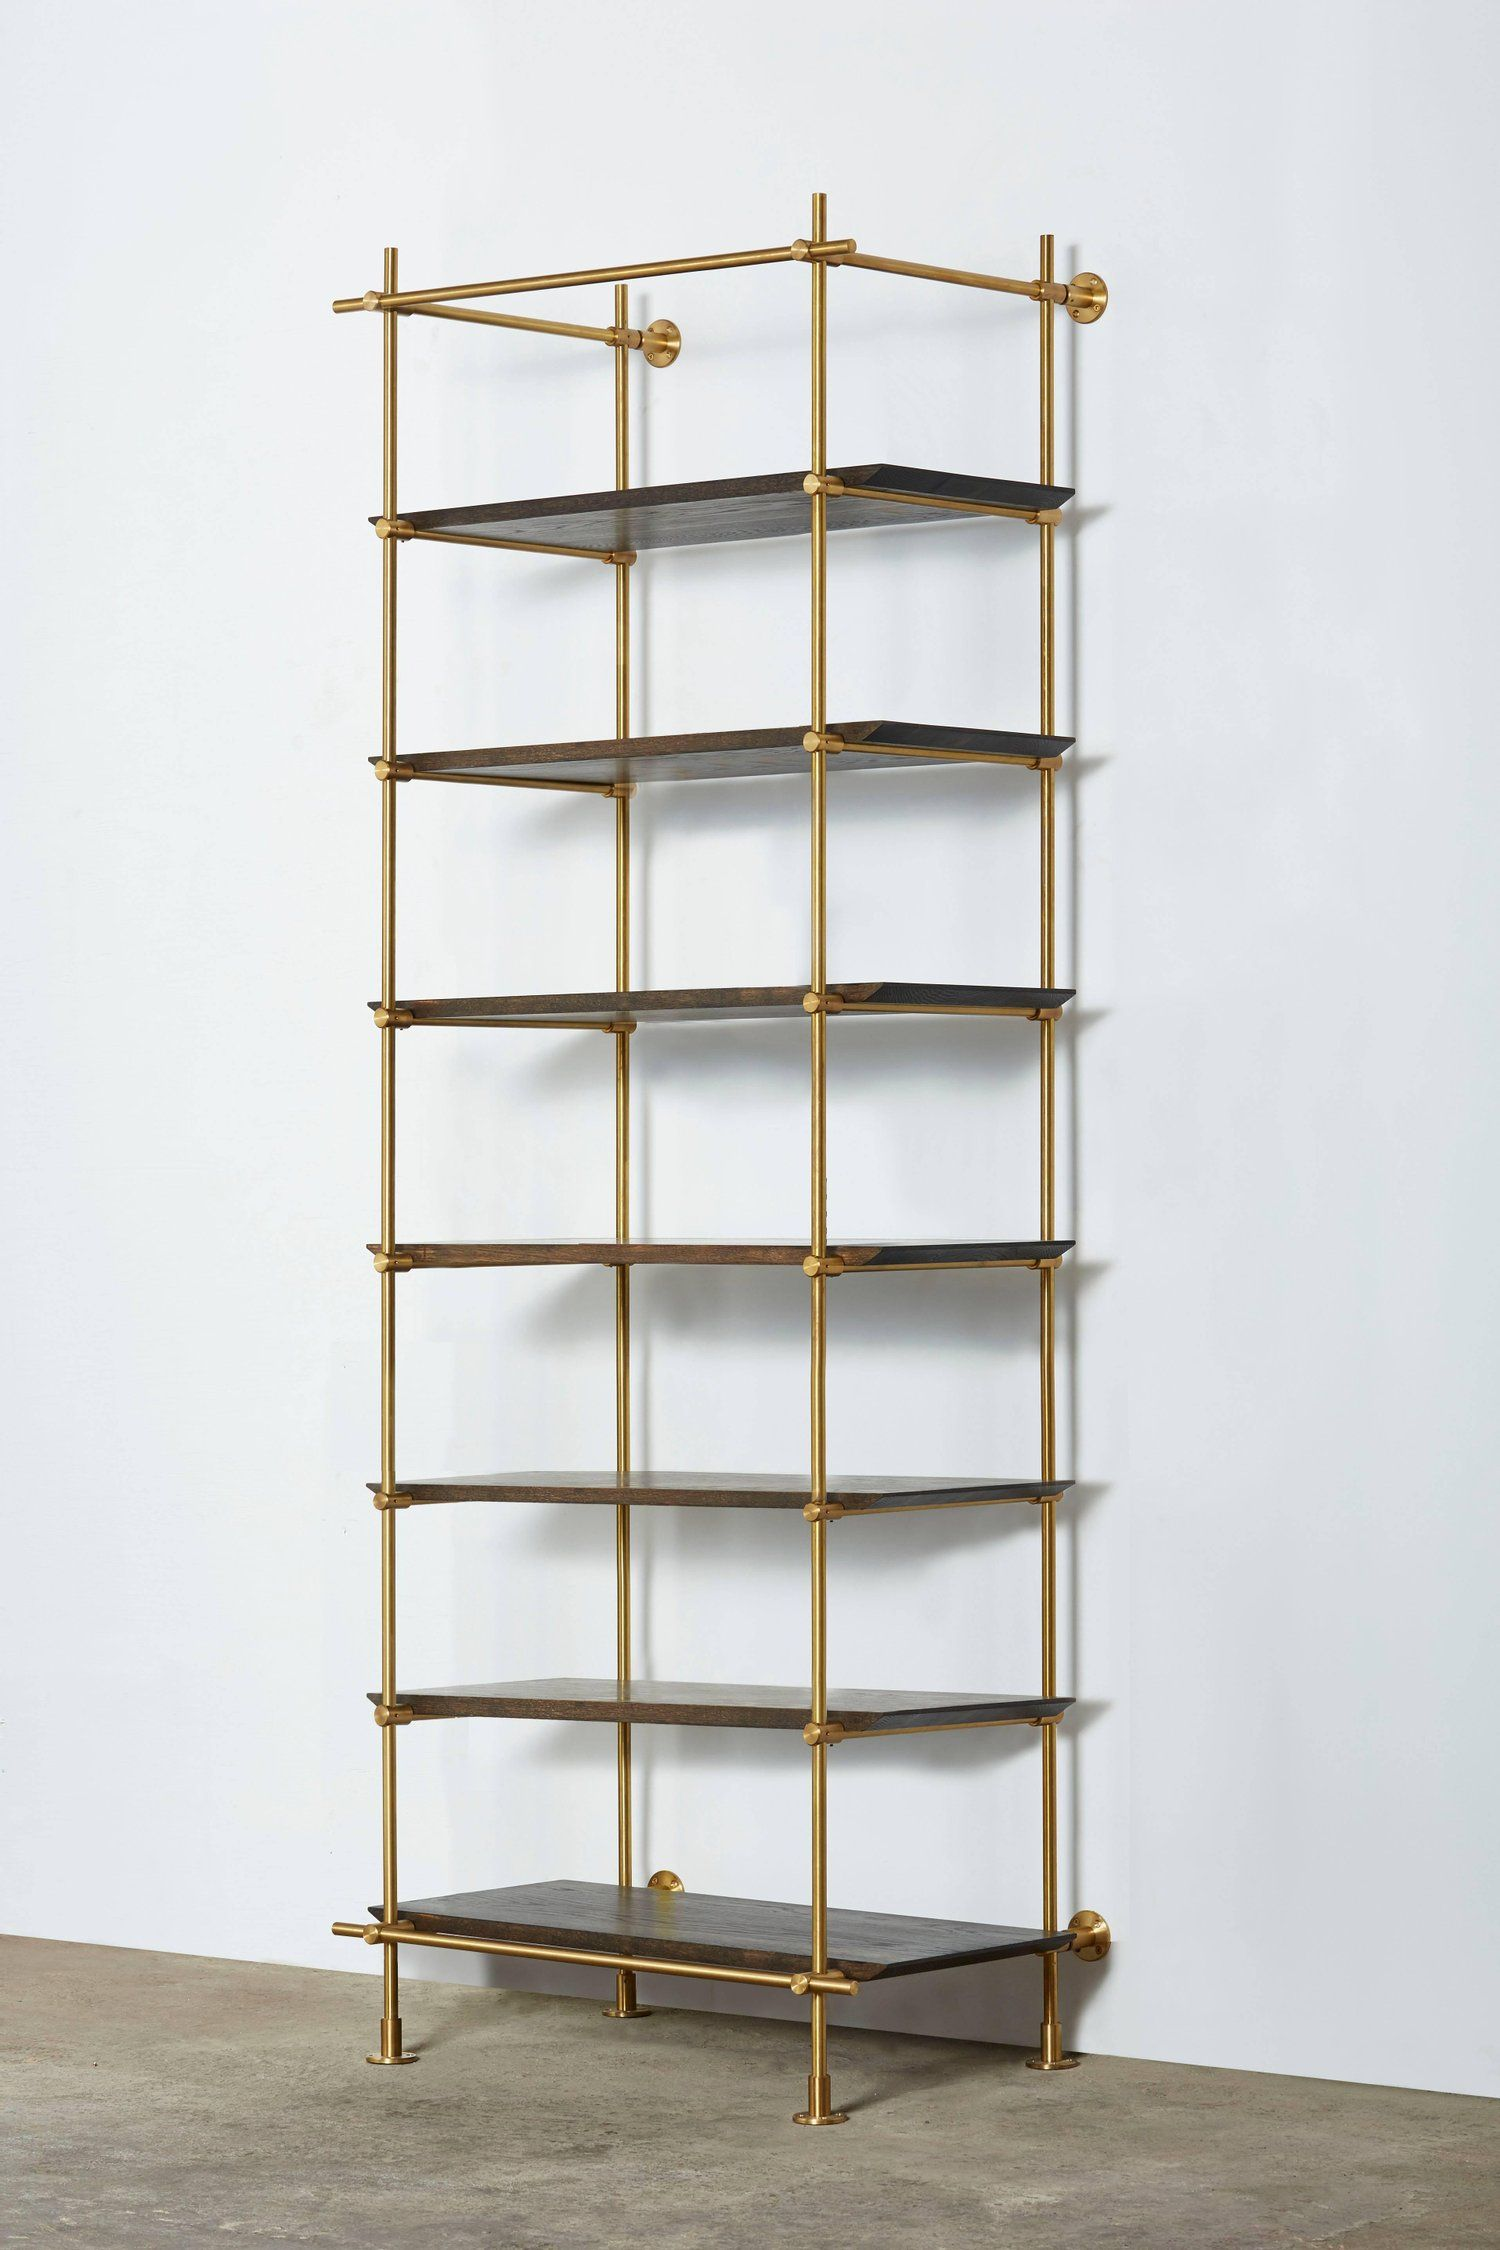 bay collector's brass shelving with oxidized oak shelves.  bay collector's brass shelving with oxidized oak shelves  oak